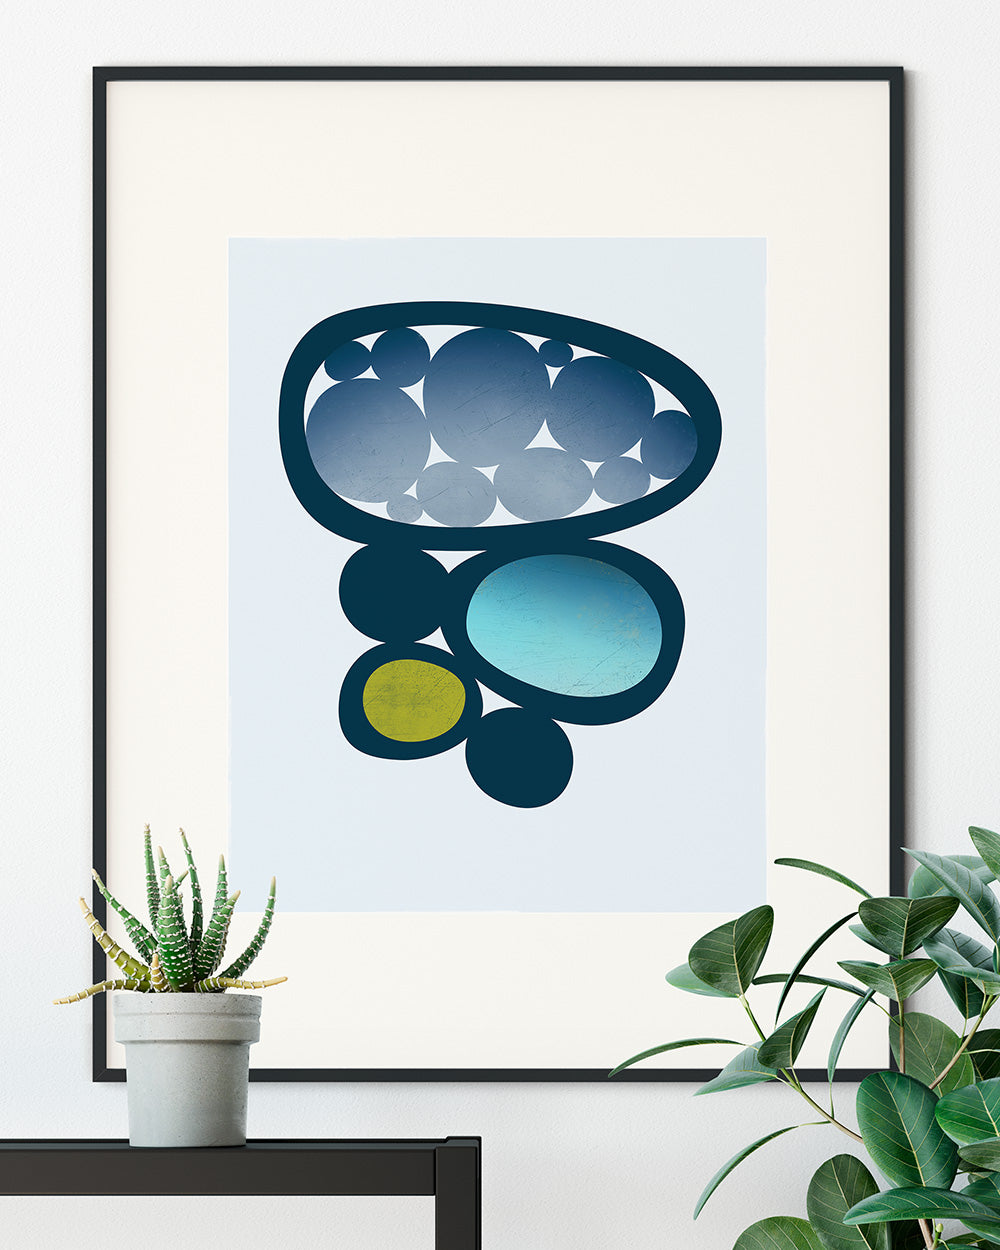 Bubbles & Sunlight: This Print is All About the Spring Thaw